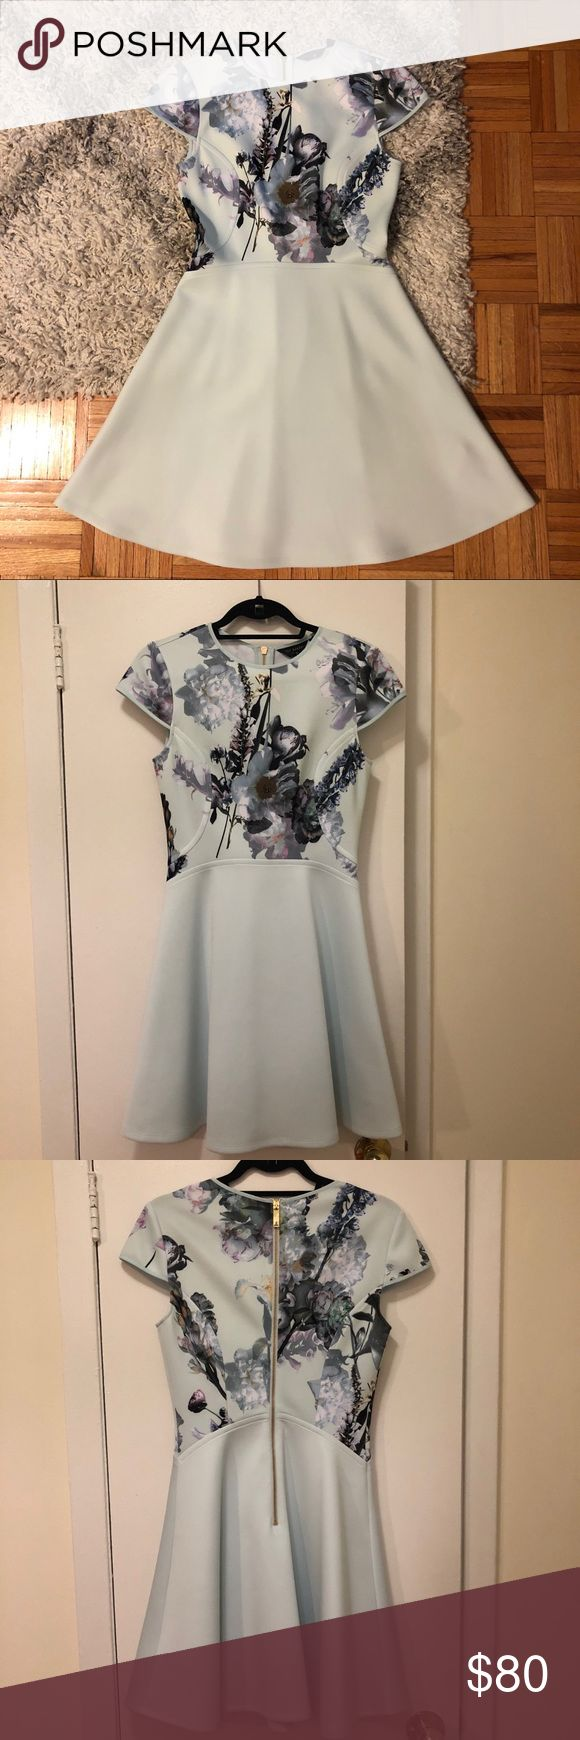 Ted Baker Floral Skater Dress🌸Size 2 (US Size 6) Ted Baker Floral Skater Dress🌸UK Size 2 US Size 4 Worn Once - Perfect Condition.  Light blue color LOVE this dress just have nothing to wear it to now!!  Welcome all offers! Ted Baker London Dresses Mini